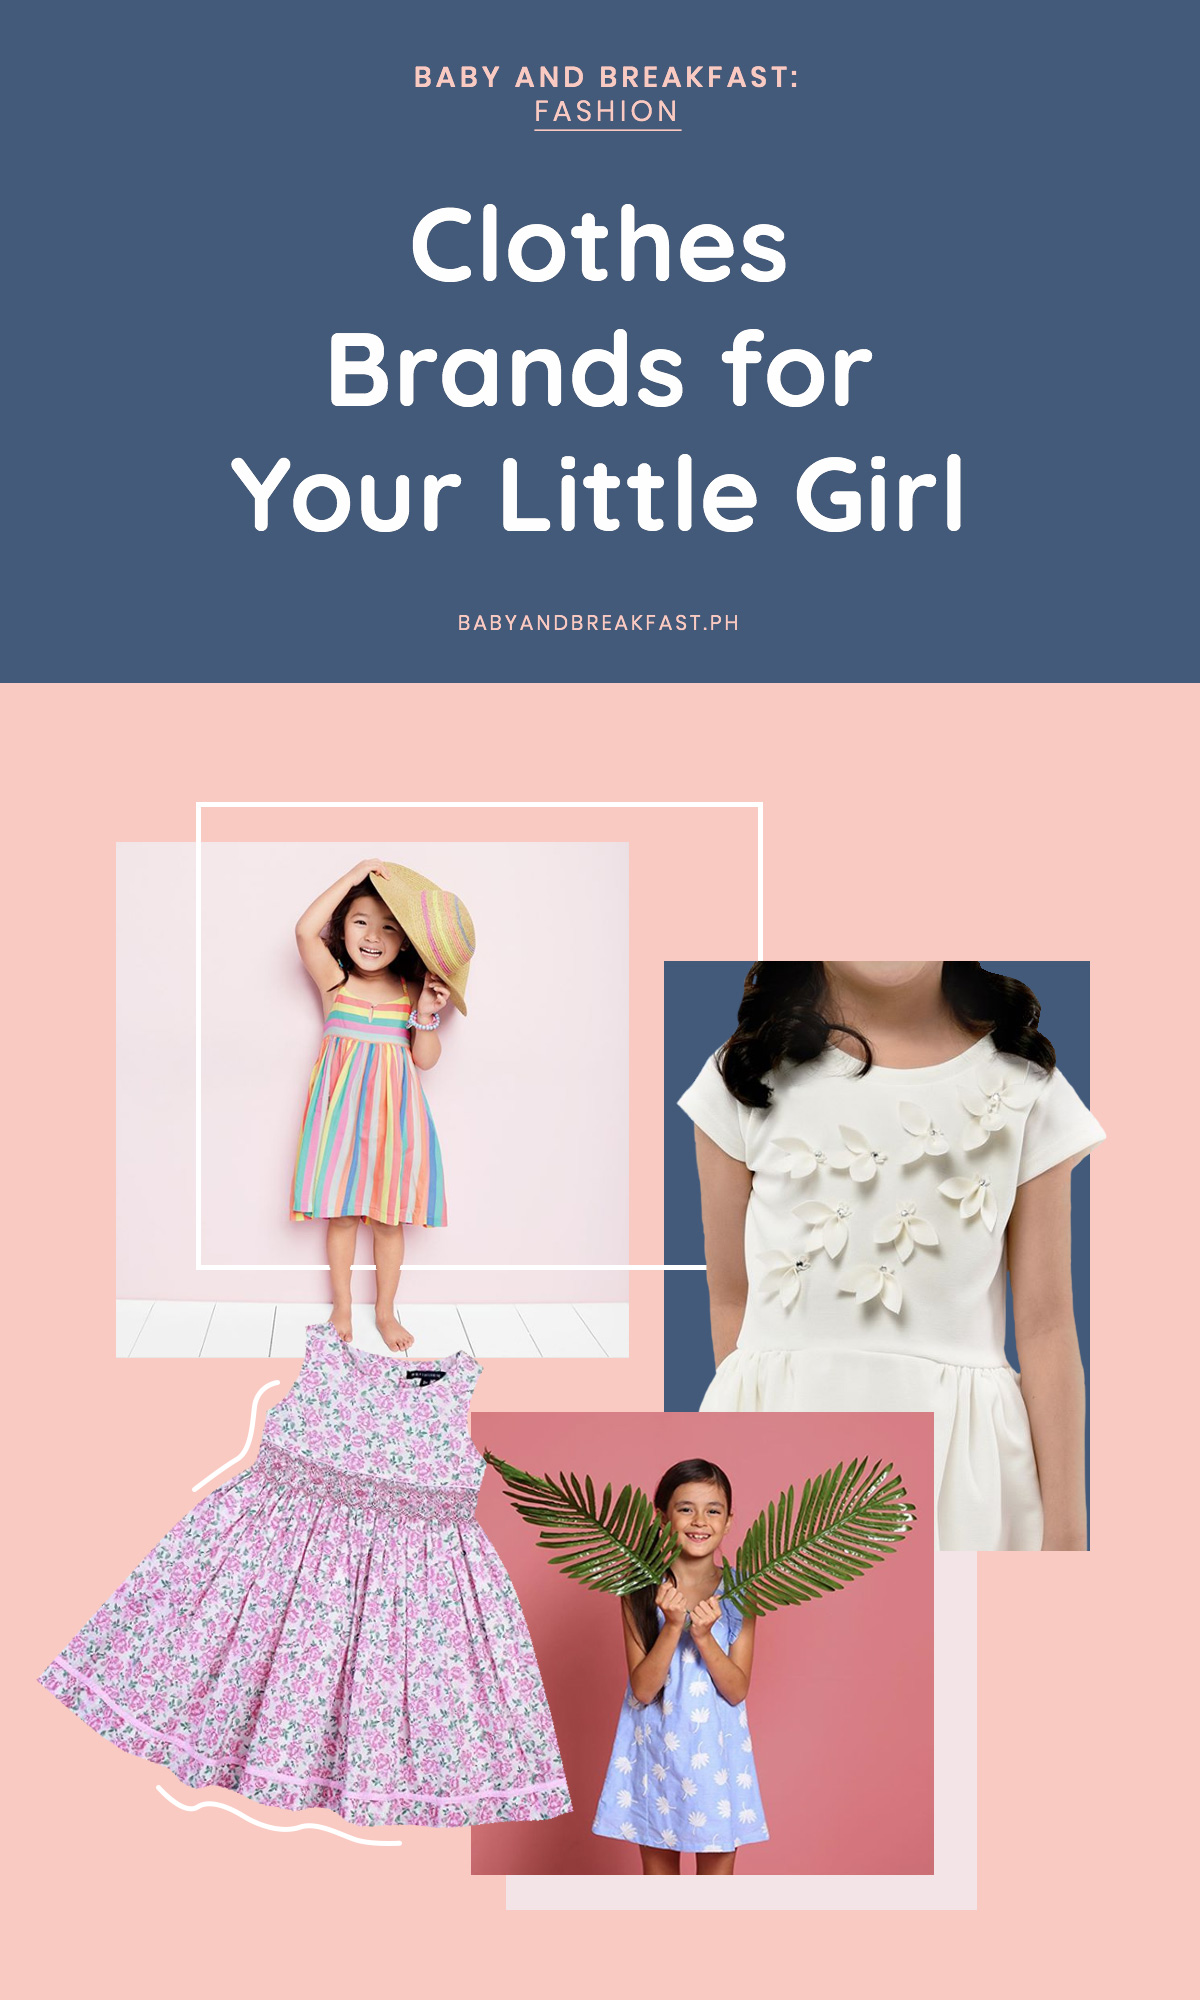 Baby and Breakfast: Fashion Clothes Brands for Your Little Girl